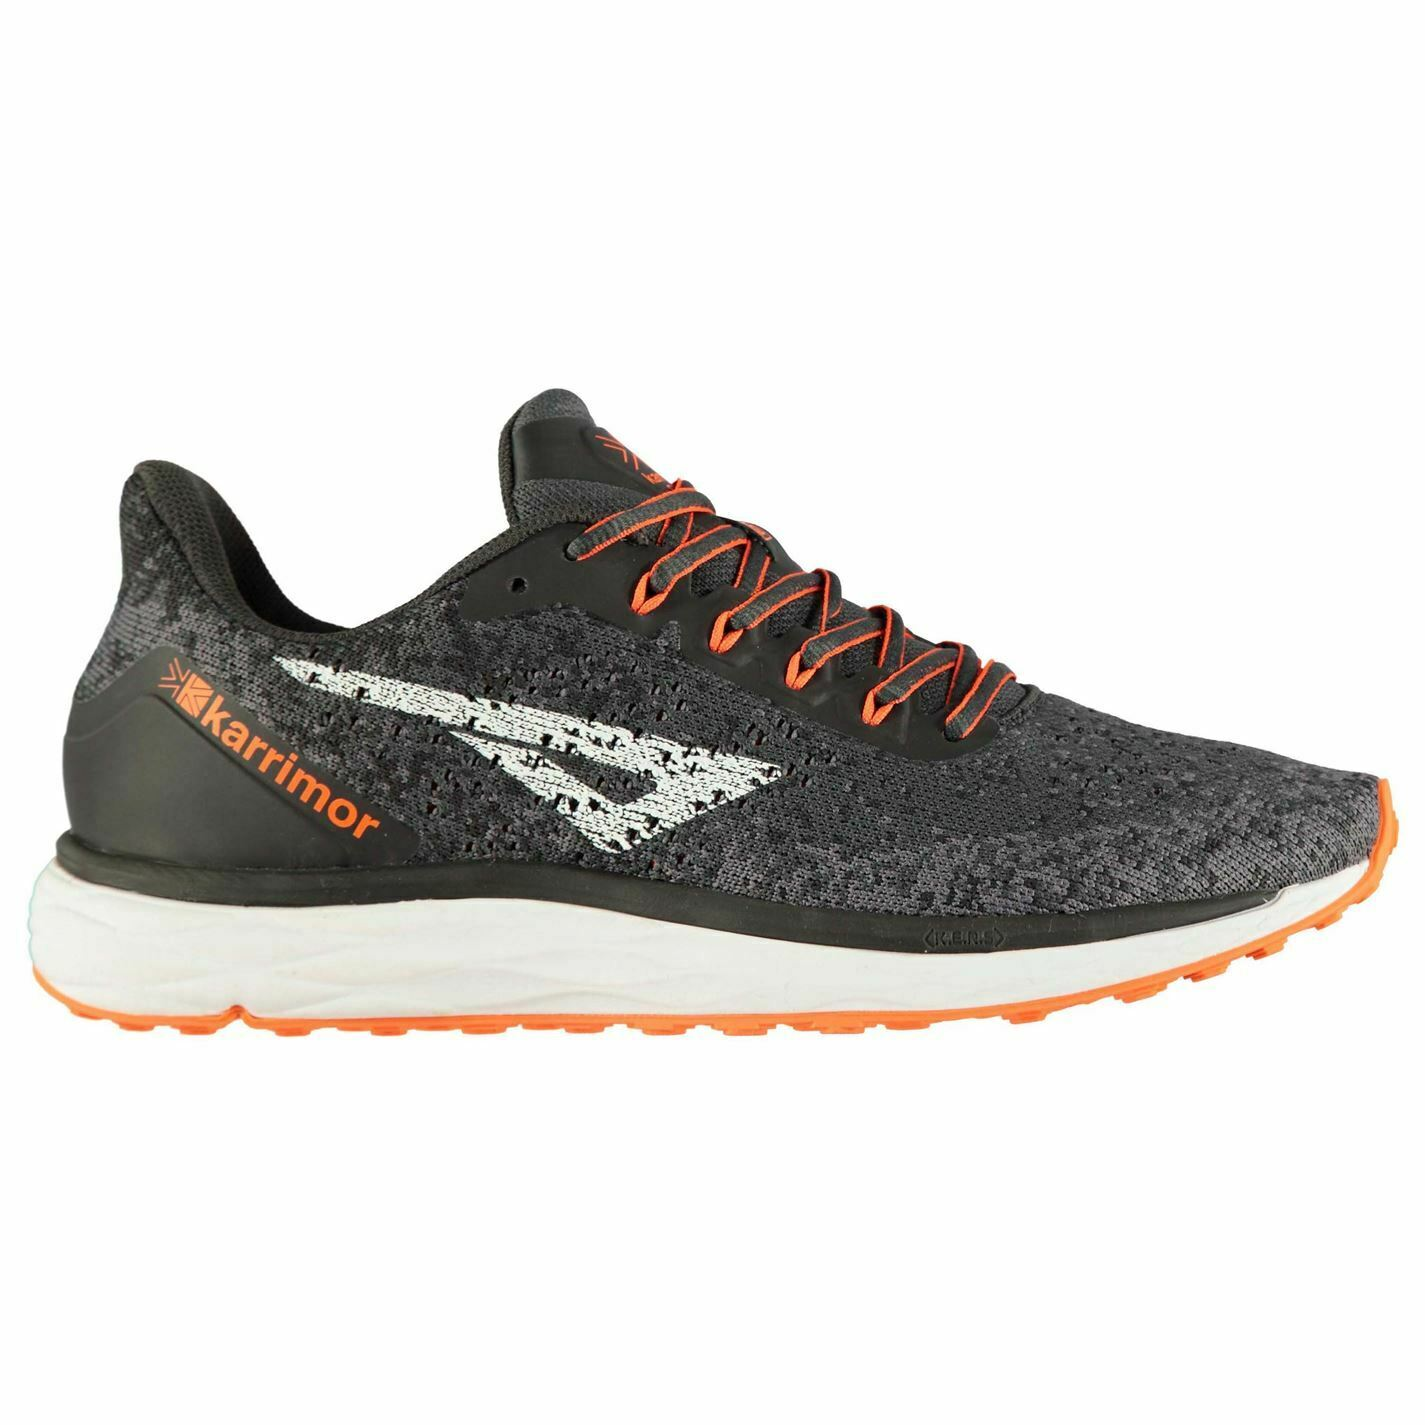 Karrimor Rapid Trainers Road Running shoes Mens   up to 50% off